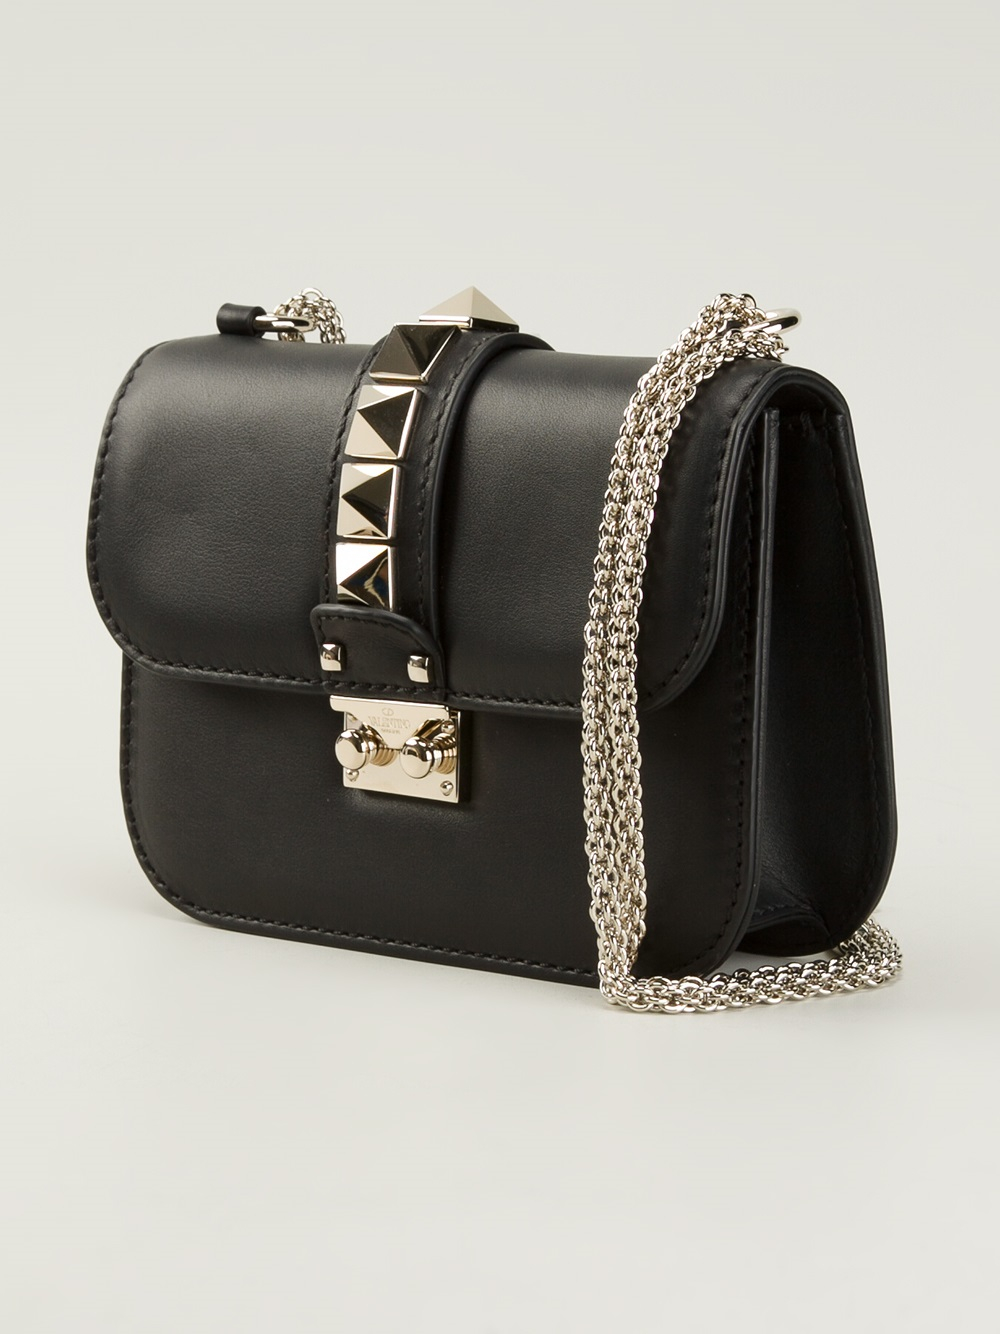 Gallery Previously Sold At Farfetch Women S Valentino Rockstud Bags